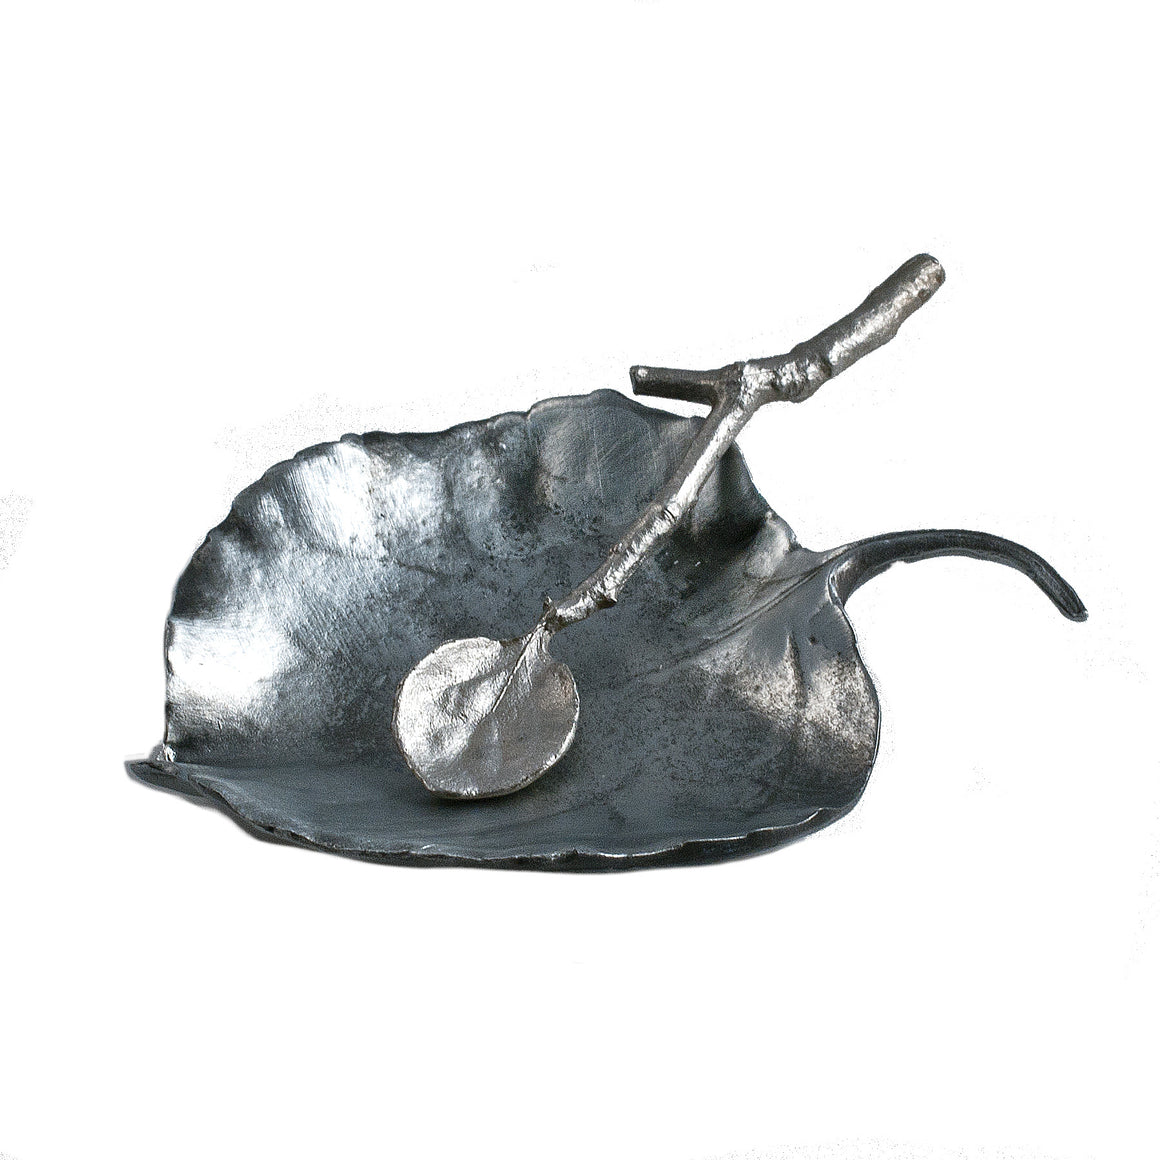 Aspen Salt Dish with Spoon - Antique Pewter